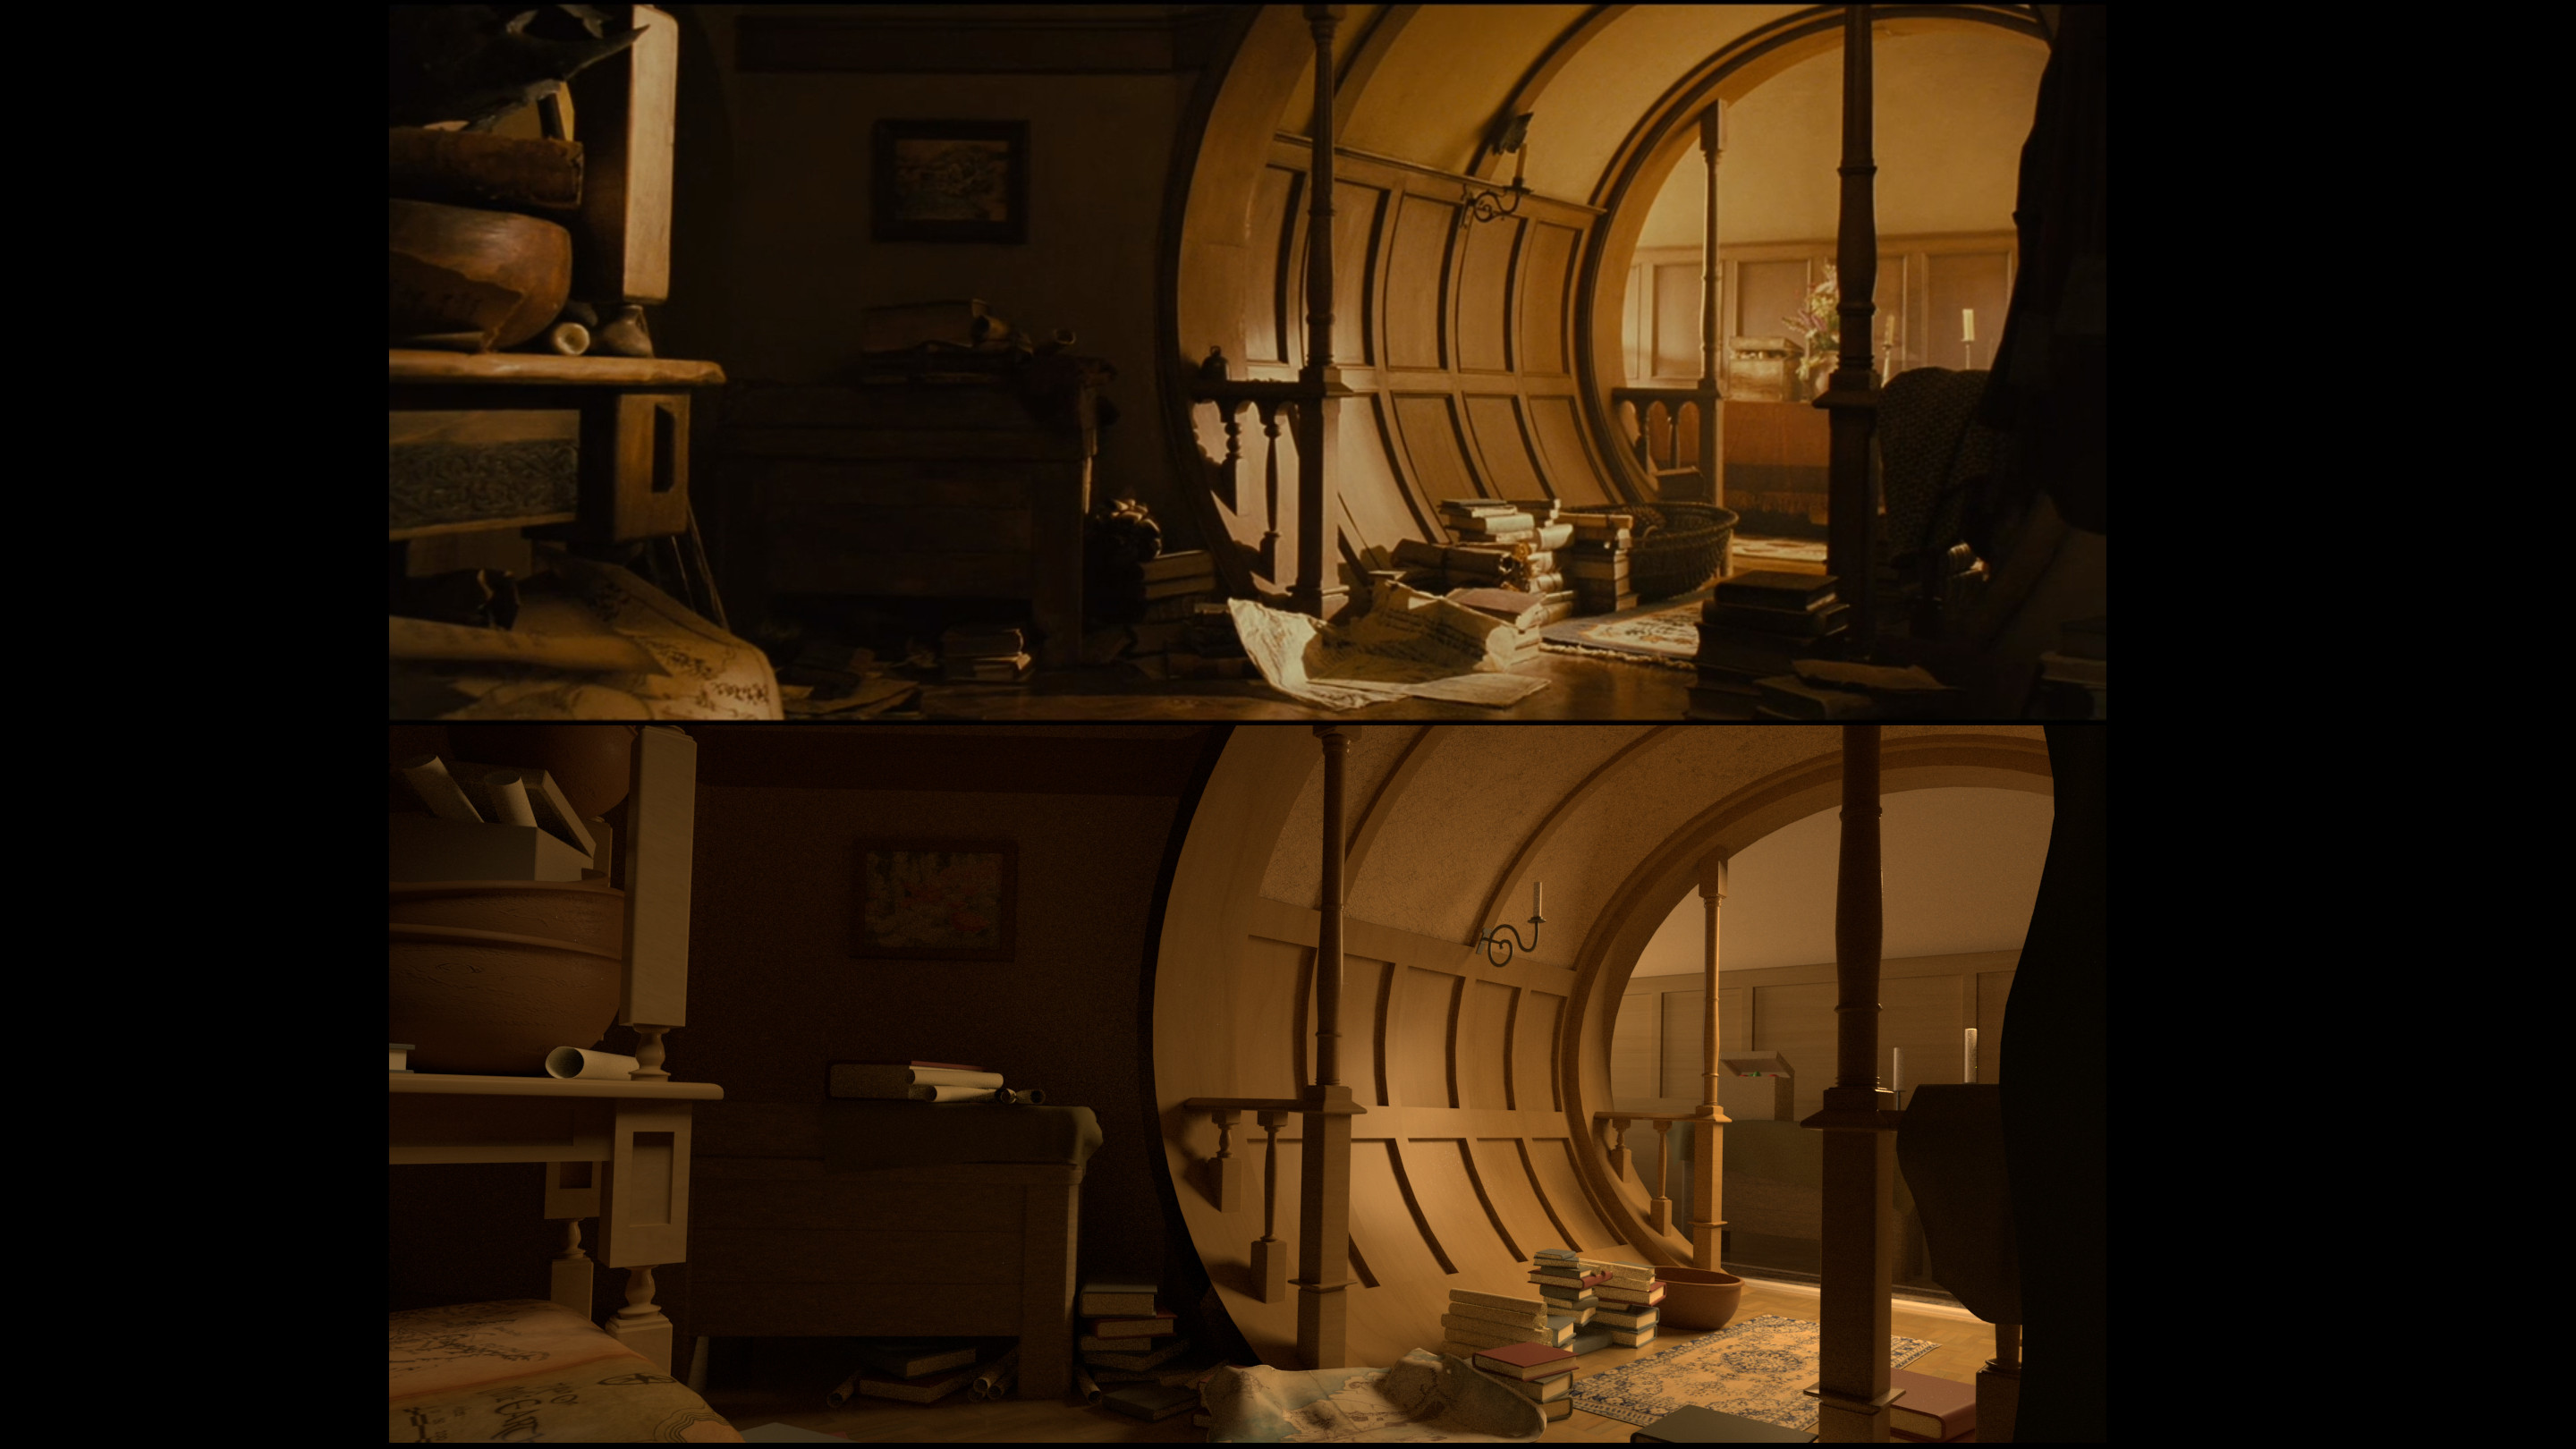 Side by side comparison of the mood match to the original image from the film (Fellowship of the Ring)